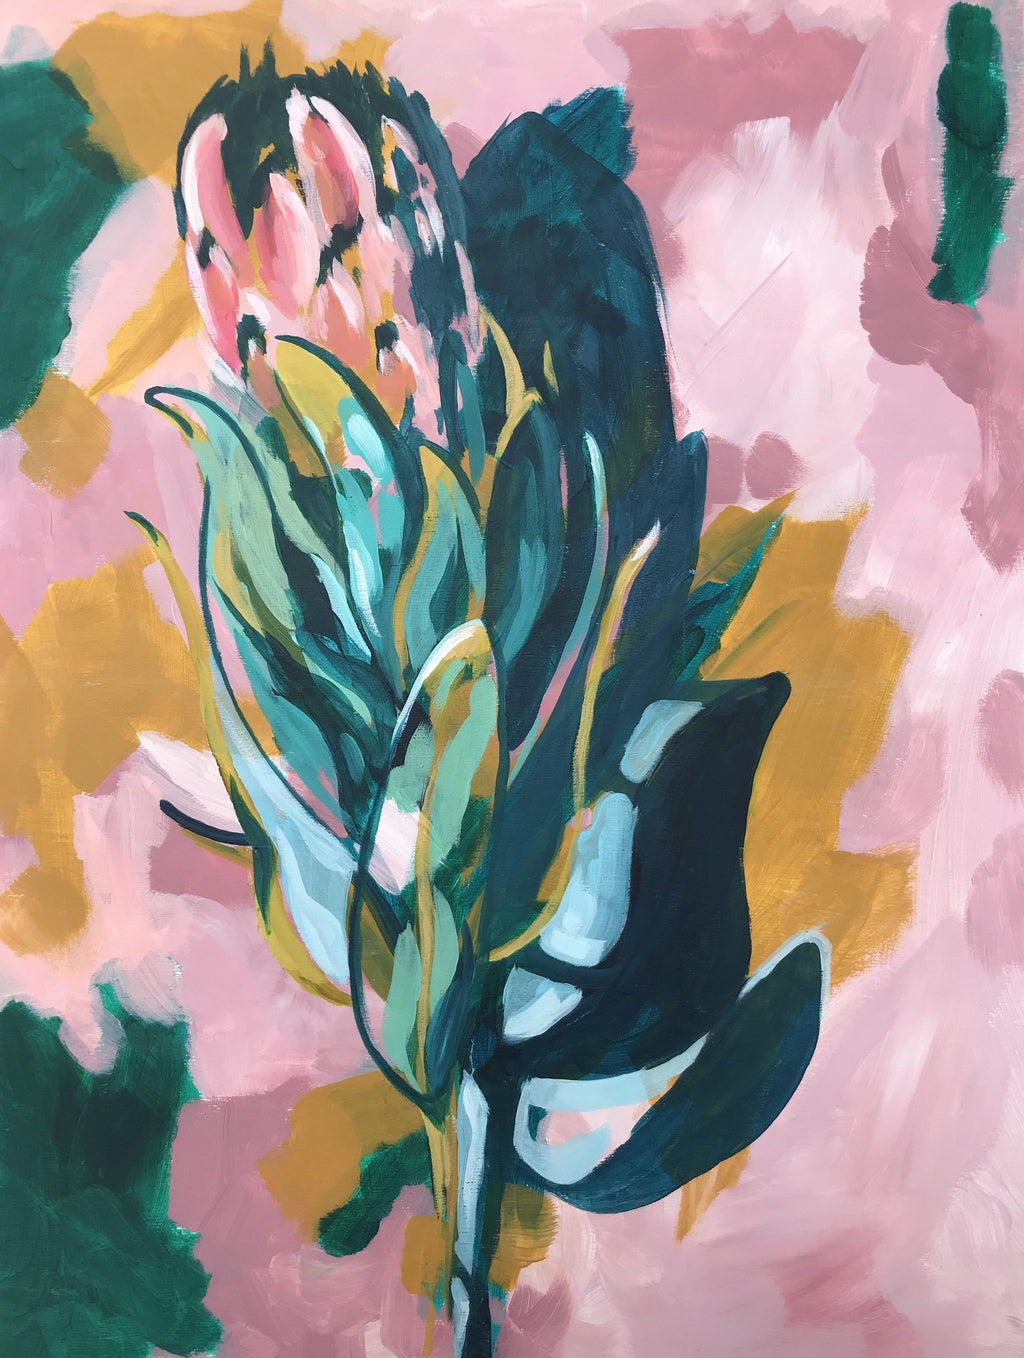 PROTEA | 18X24 | ORIGINAL ACRYLIC PAINTING ON WOOD | Item number 19-77P